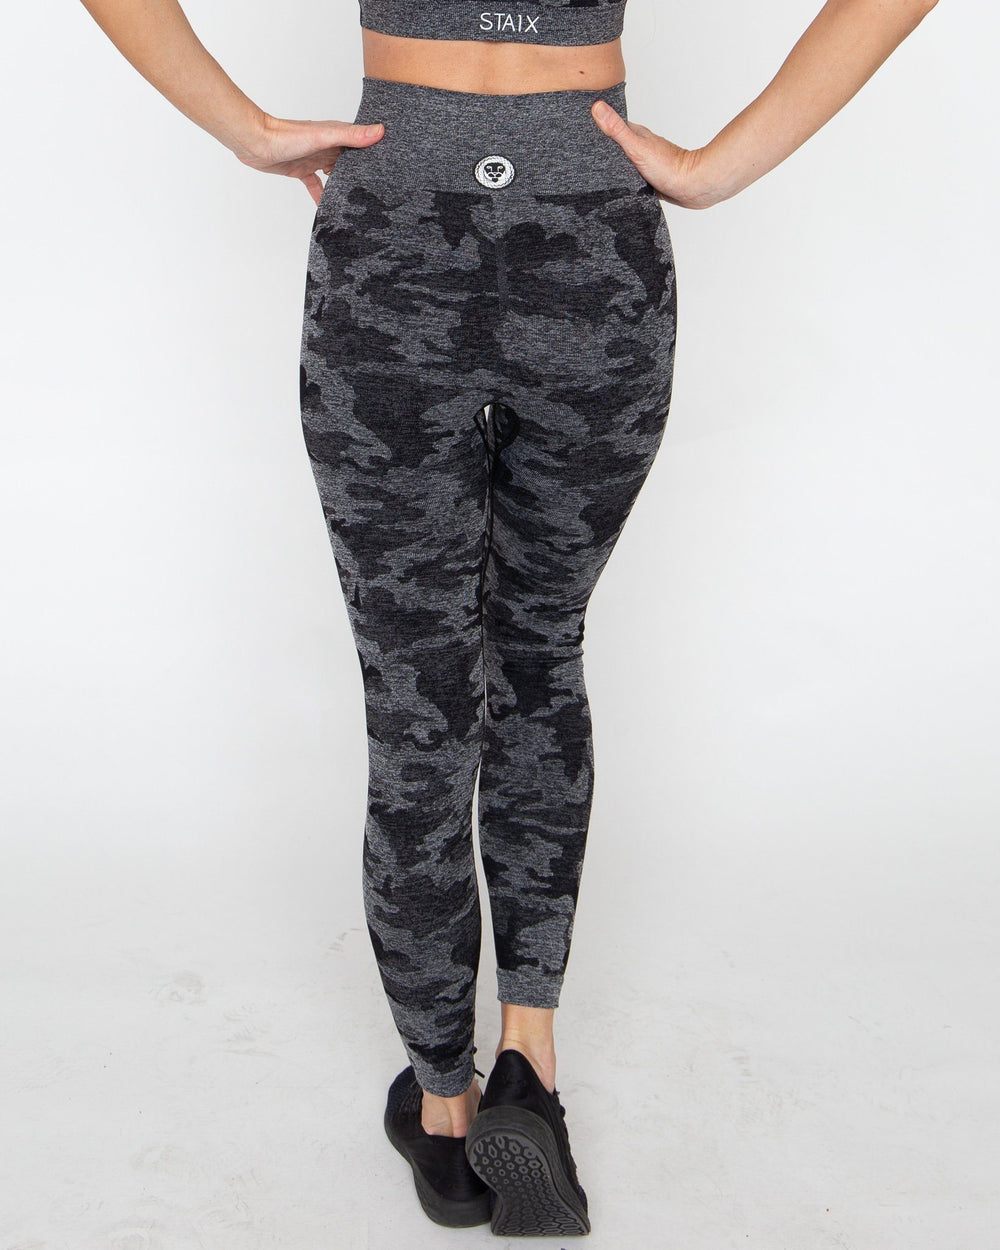 SHADOW CAMO LEGGINGS STAIX